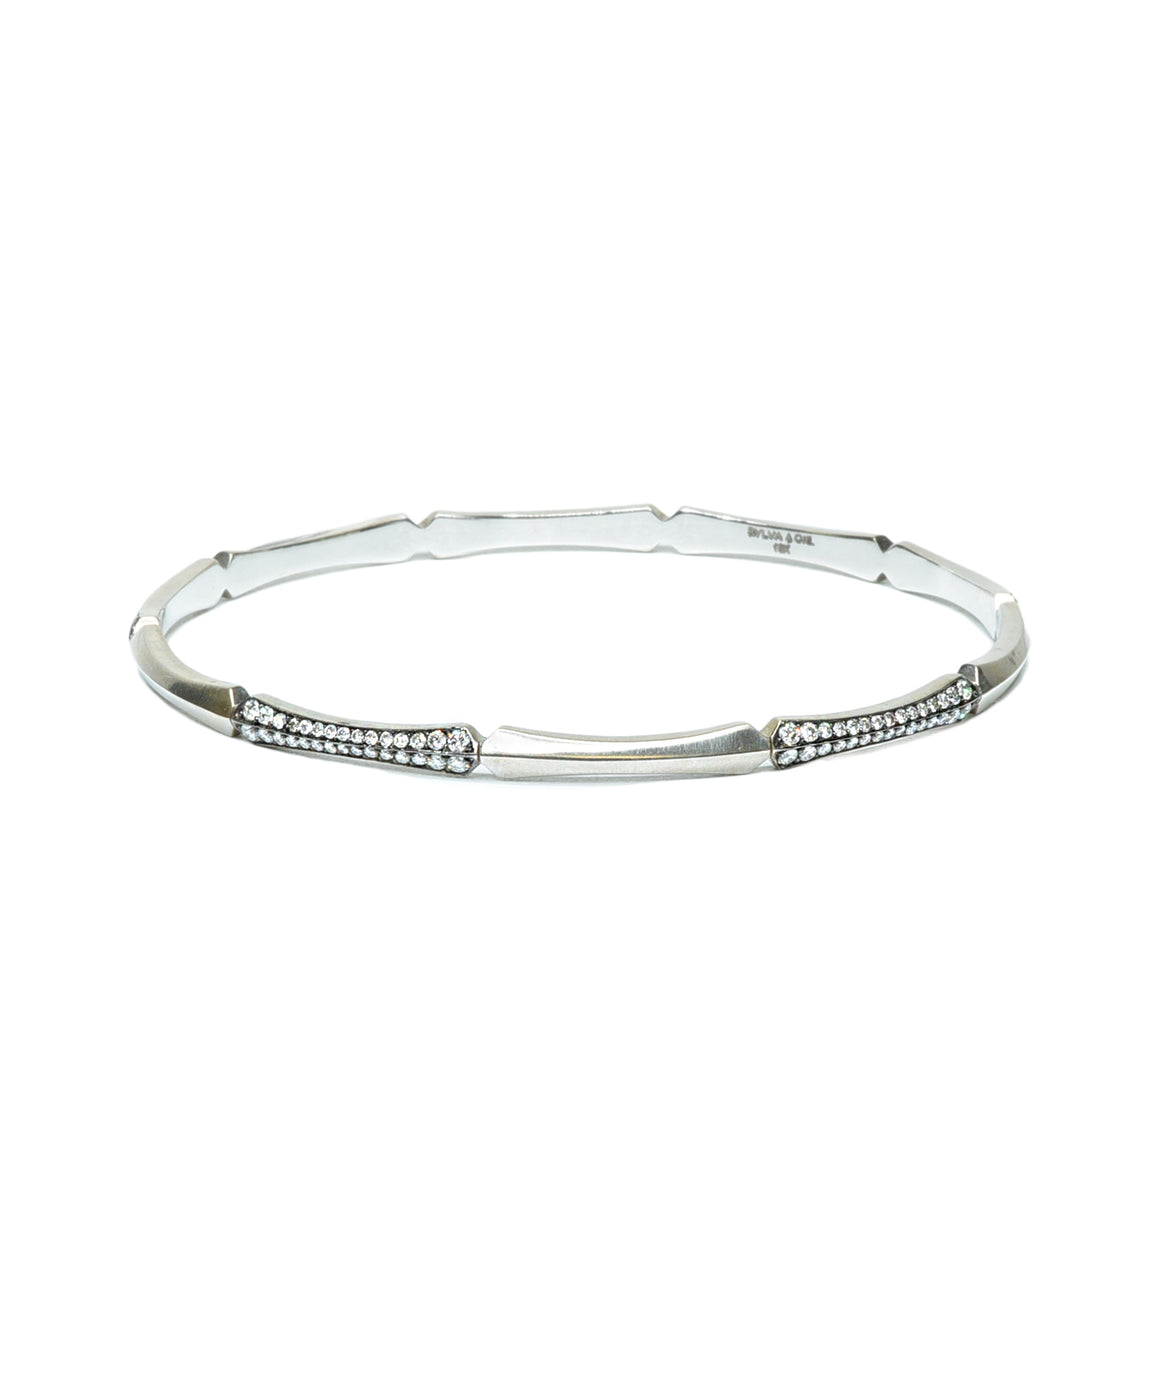 "Fun alone, and better stacked! The 18k white gold bangle bracelet is set with brilliant diamonds totaling 1.20 carat. The round bracelet is  2 1/2"" in diameter"